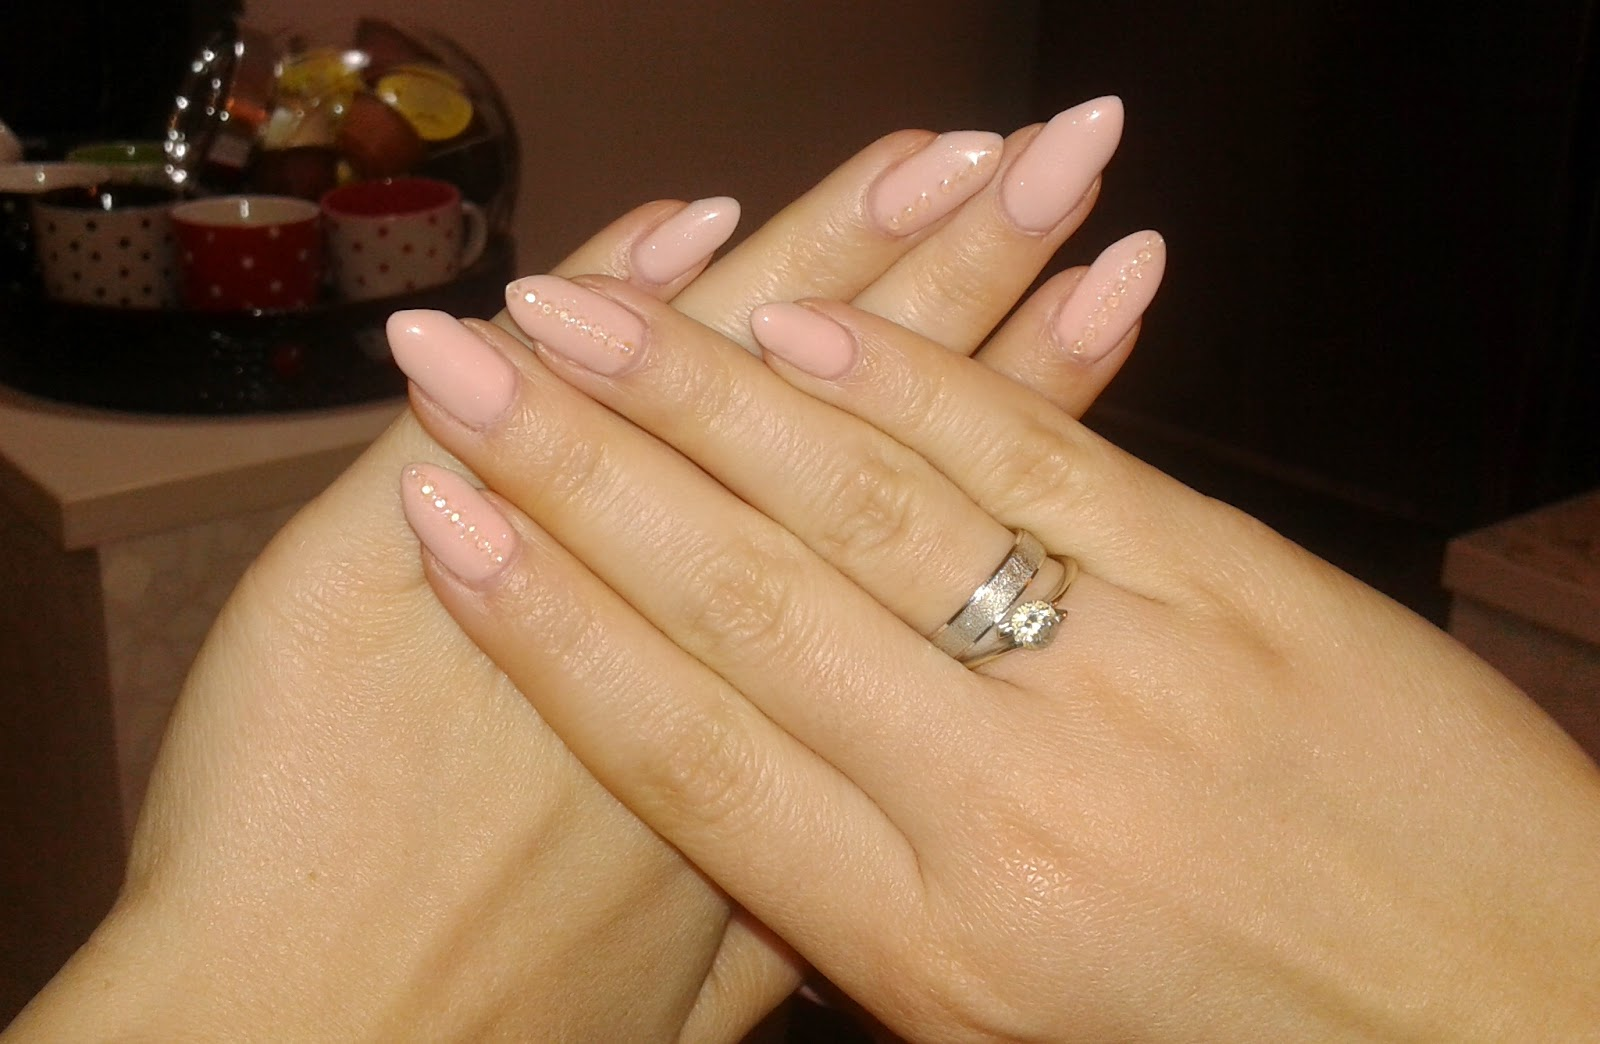 beauty, nails, stiletto nails, nude stiletto nails with rhinestones, nail art, nail design, diy nails, gel nails